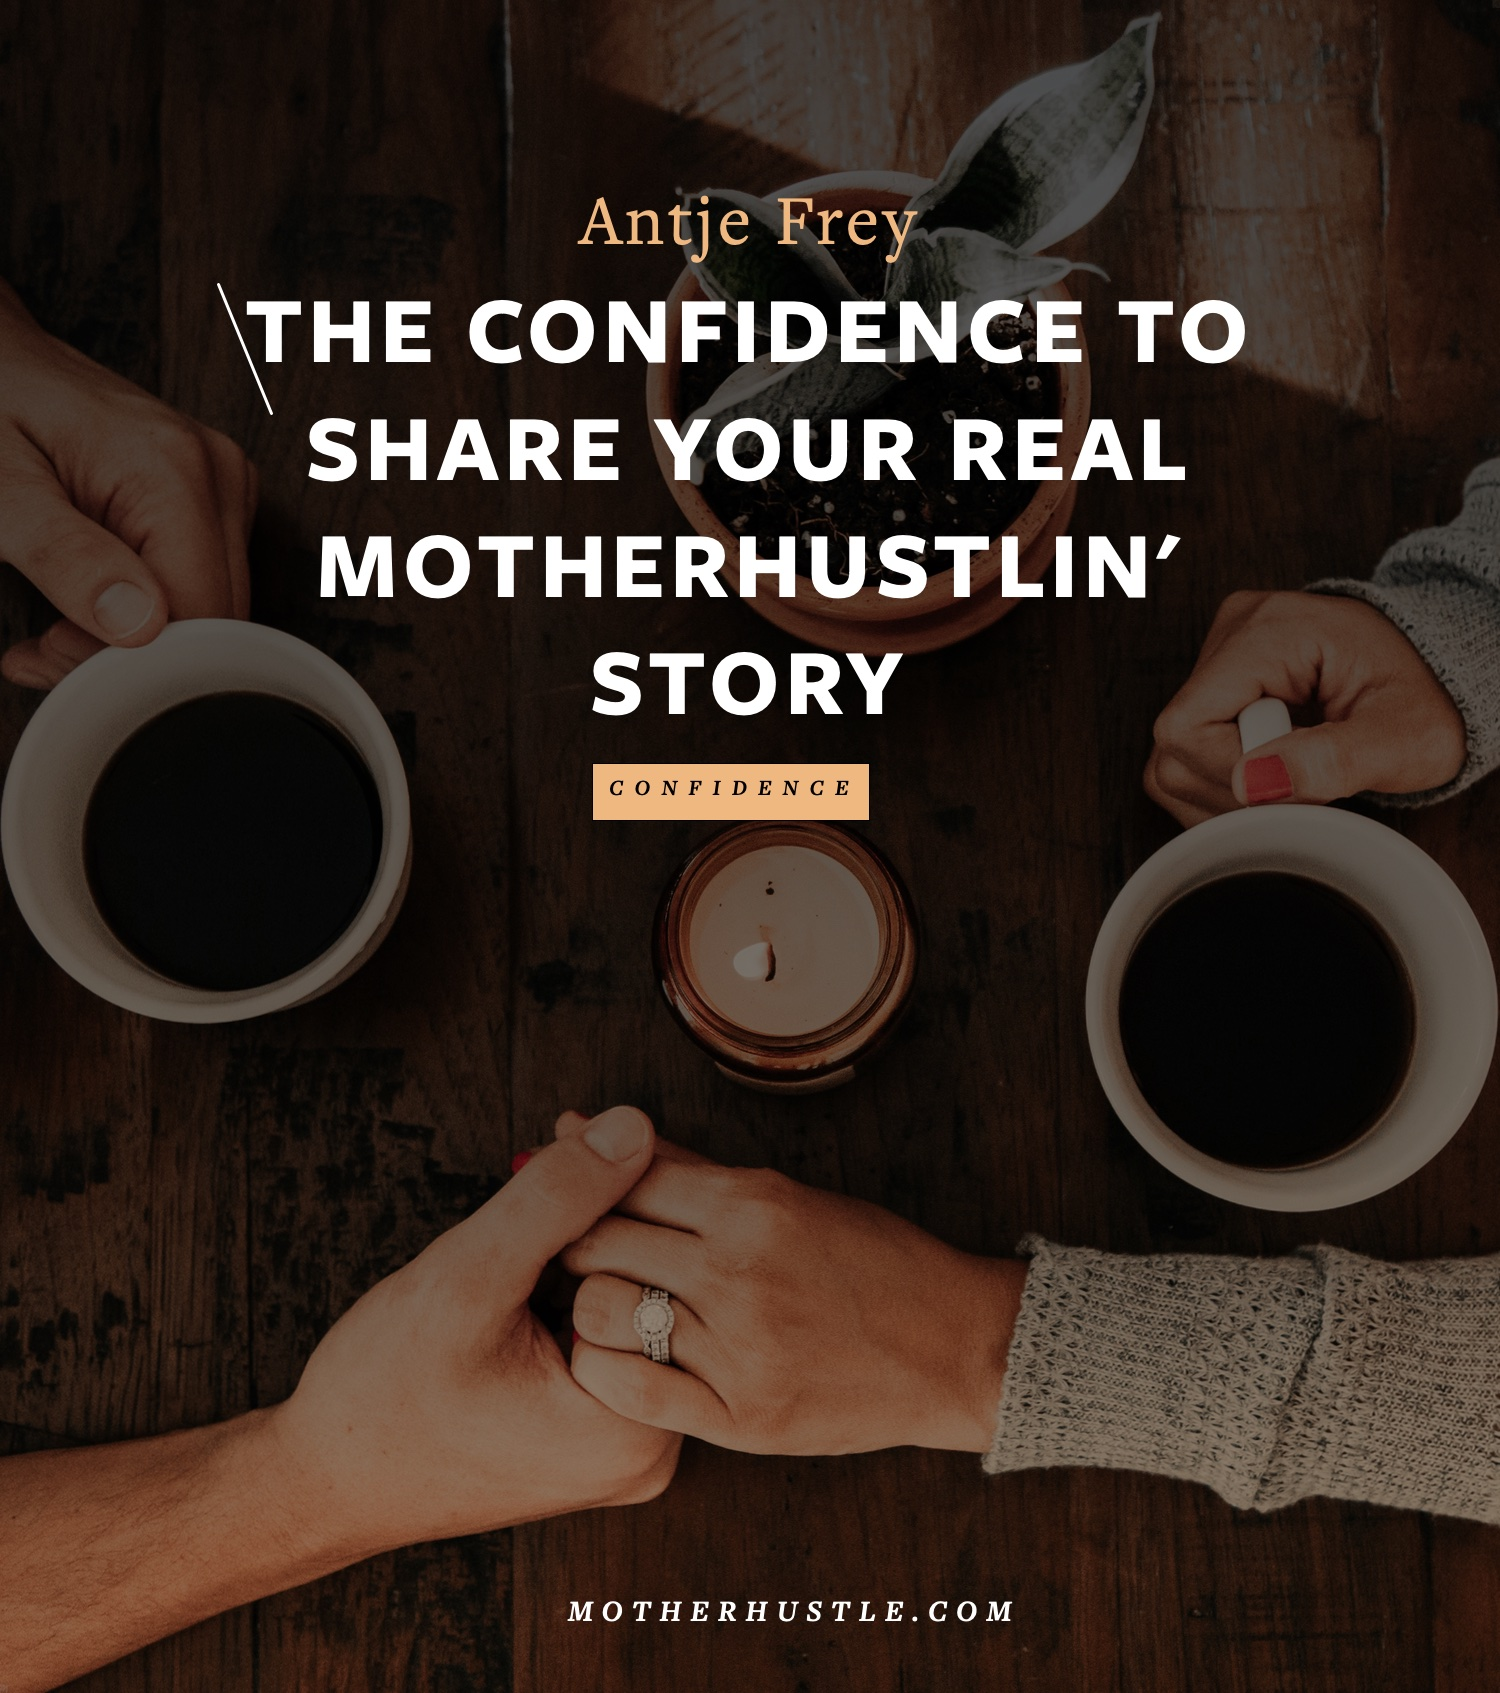 The Confidence to Share Your Real MotherHustlin' Story - by Antje Frey for MotherHustle